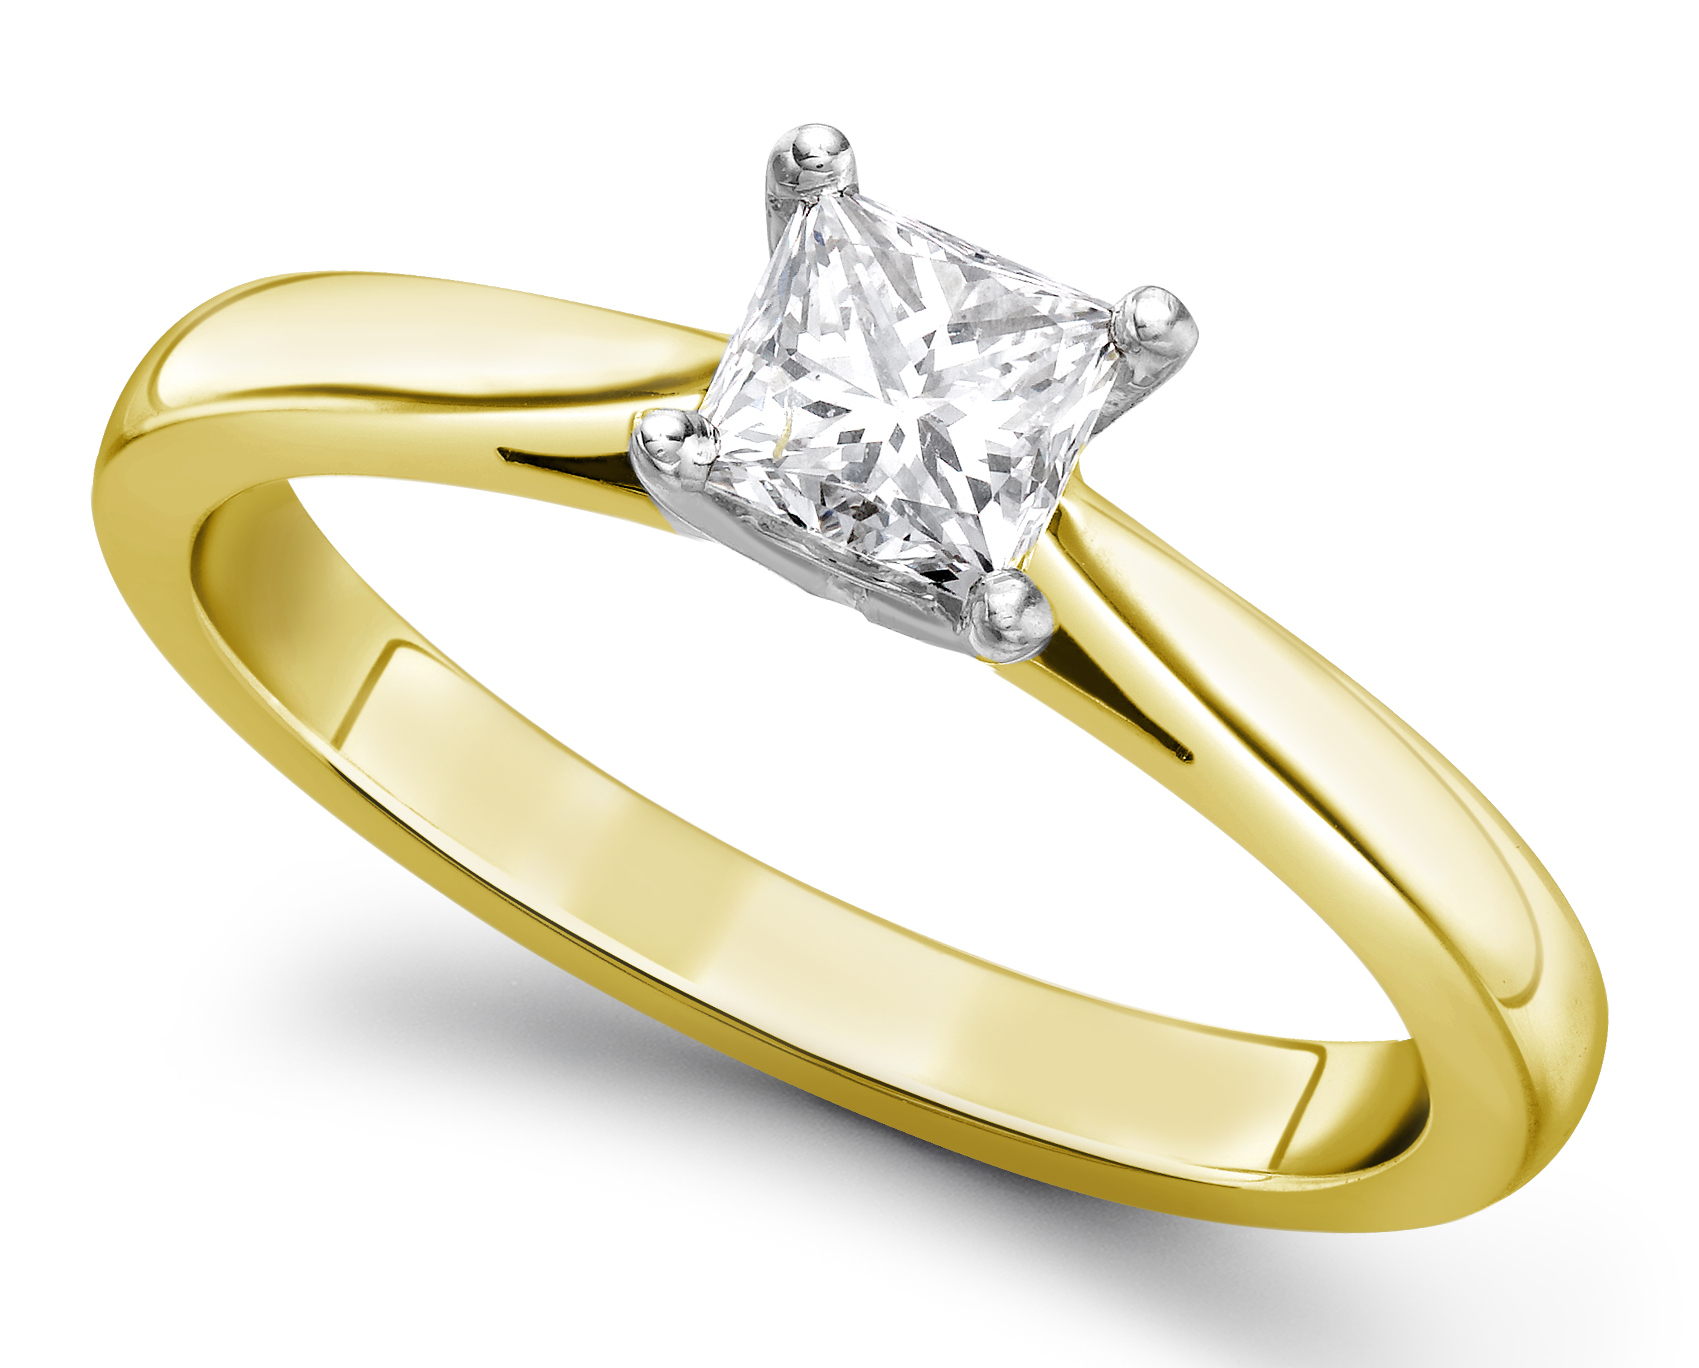 Princess Cut Four Claw Yellow Gold Engagement Ring GRC651YG Main Image